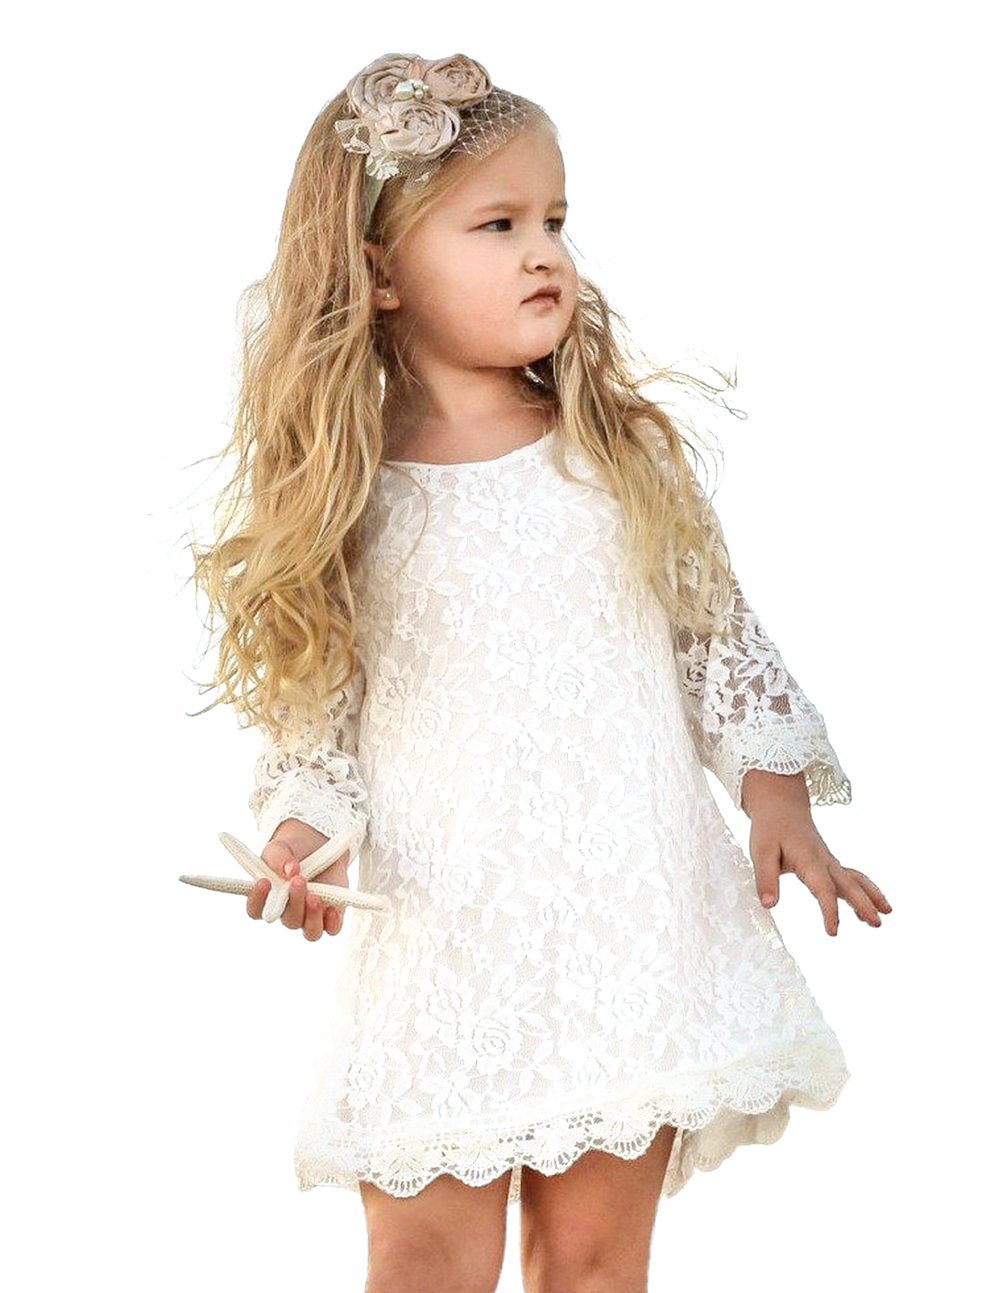 Tkiames Girls Easter Flower Dress Casual Crew Neck Floral A-Line Party Dress (2T(2-3 Years), White)